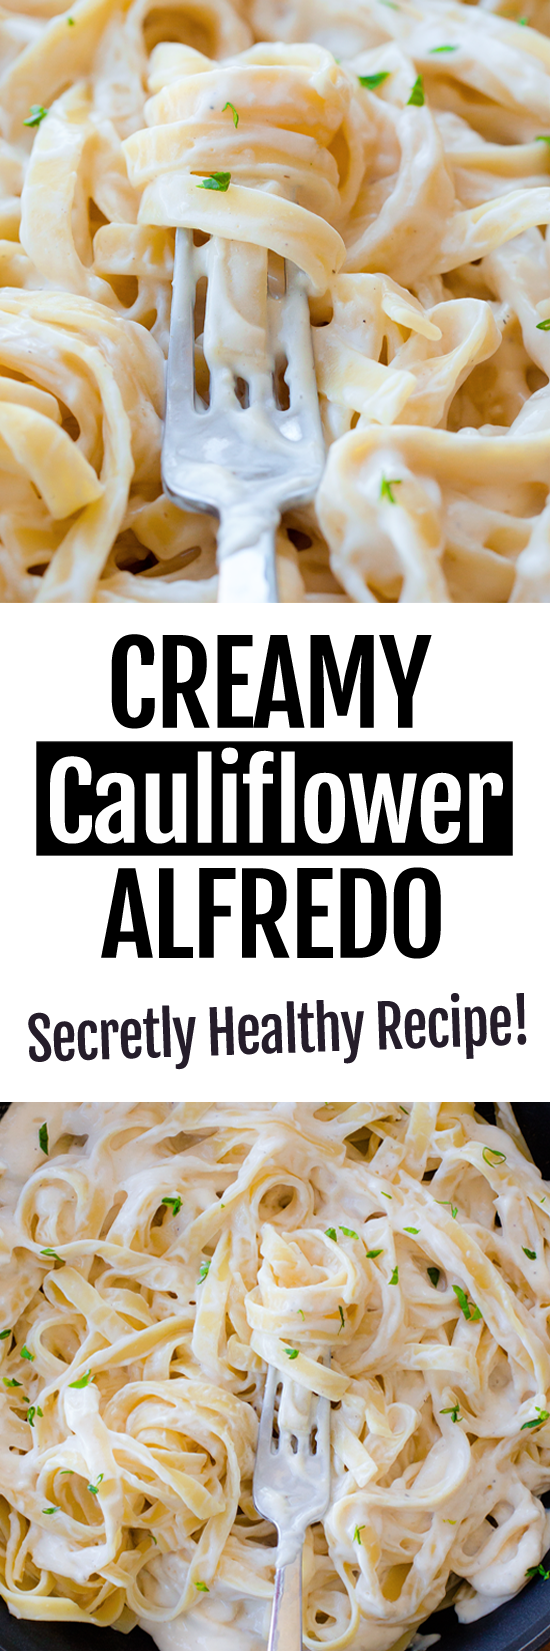 How To Make The Best Healthy Cauliflower Alfredo Recipe (Vegan)